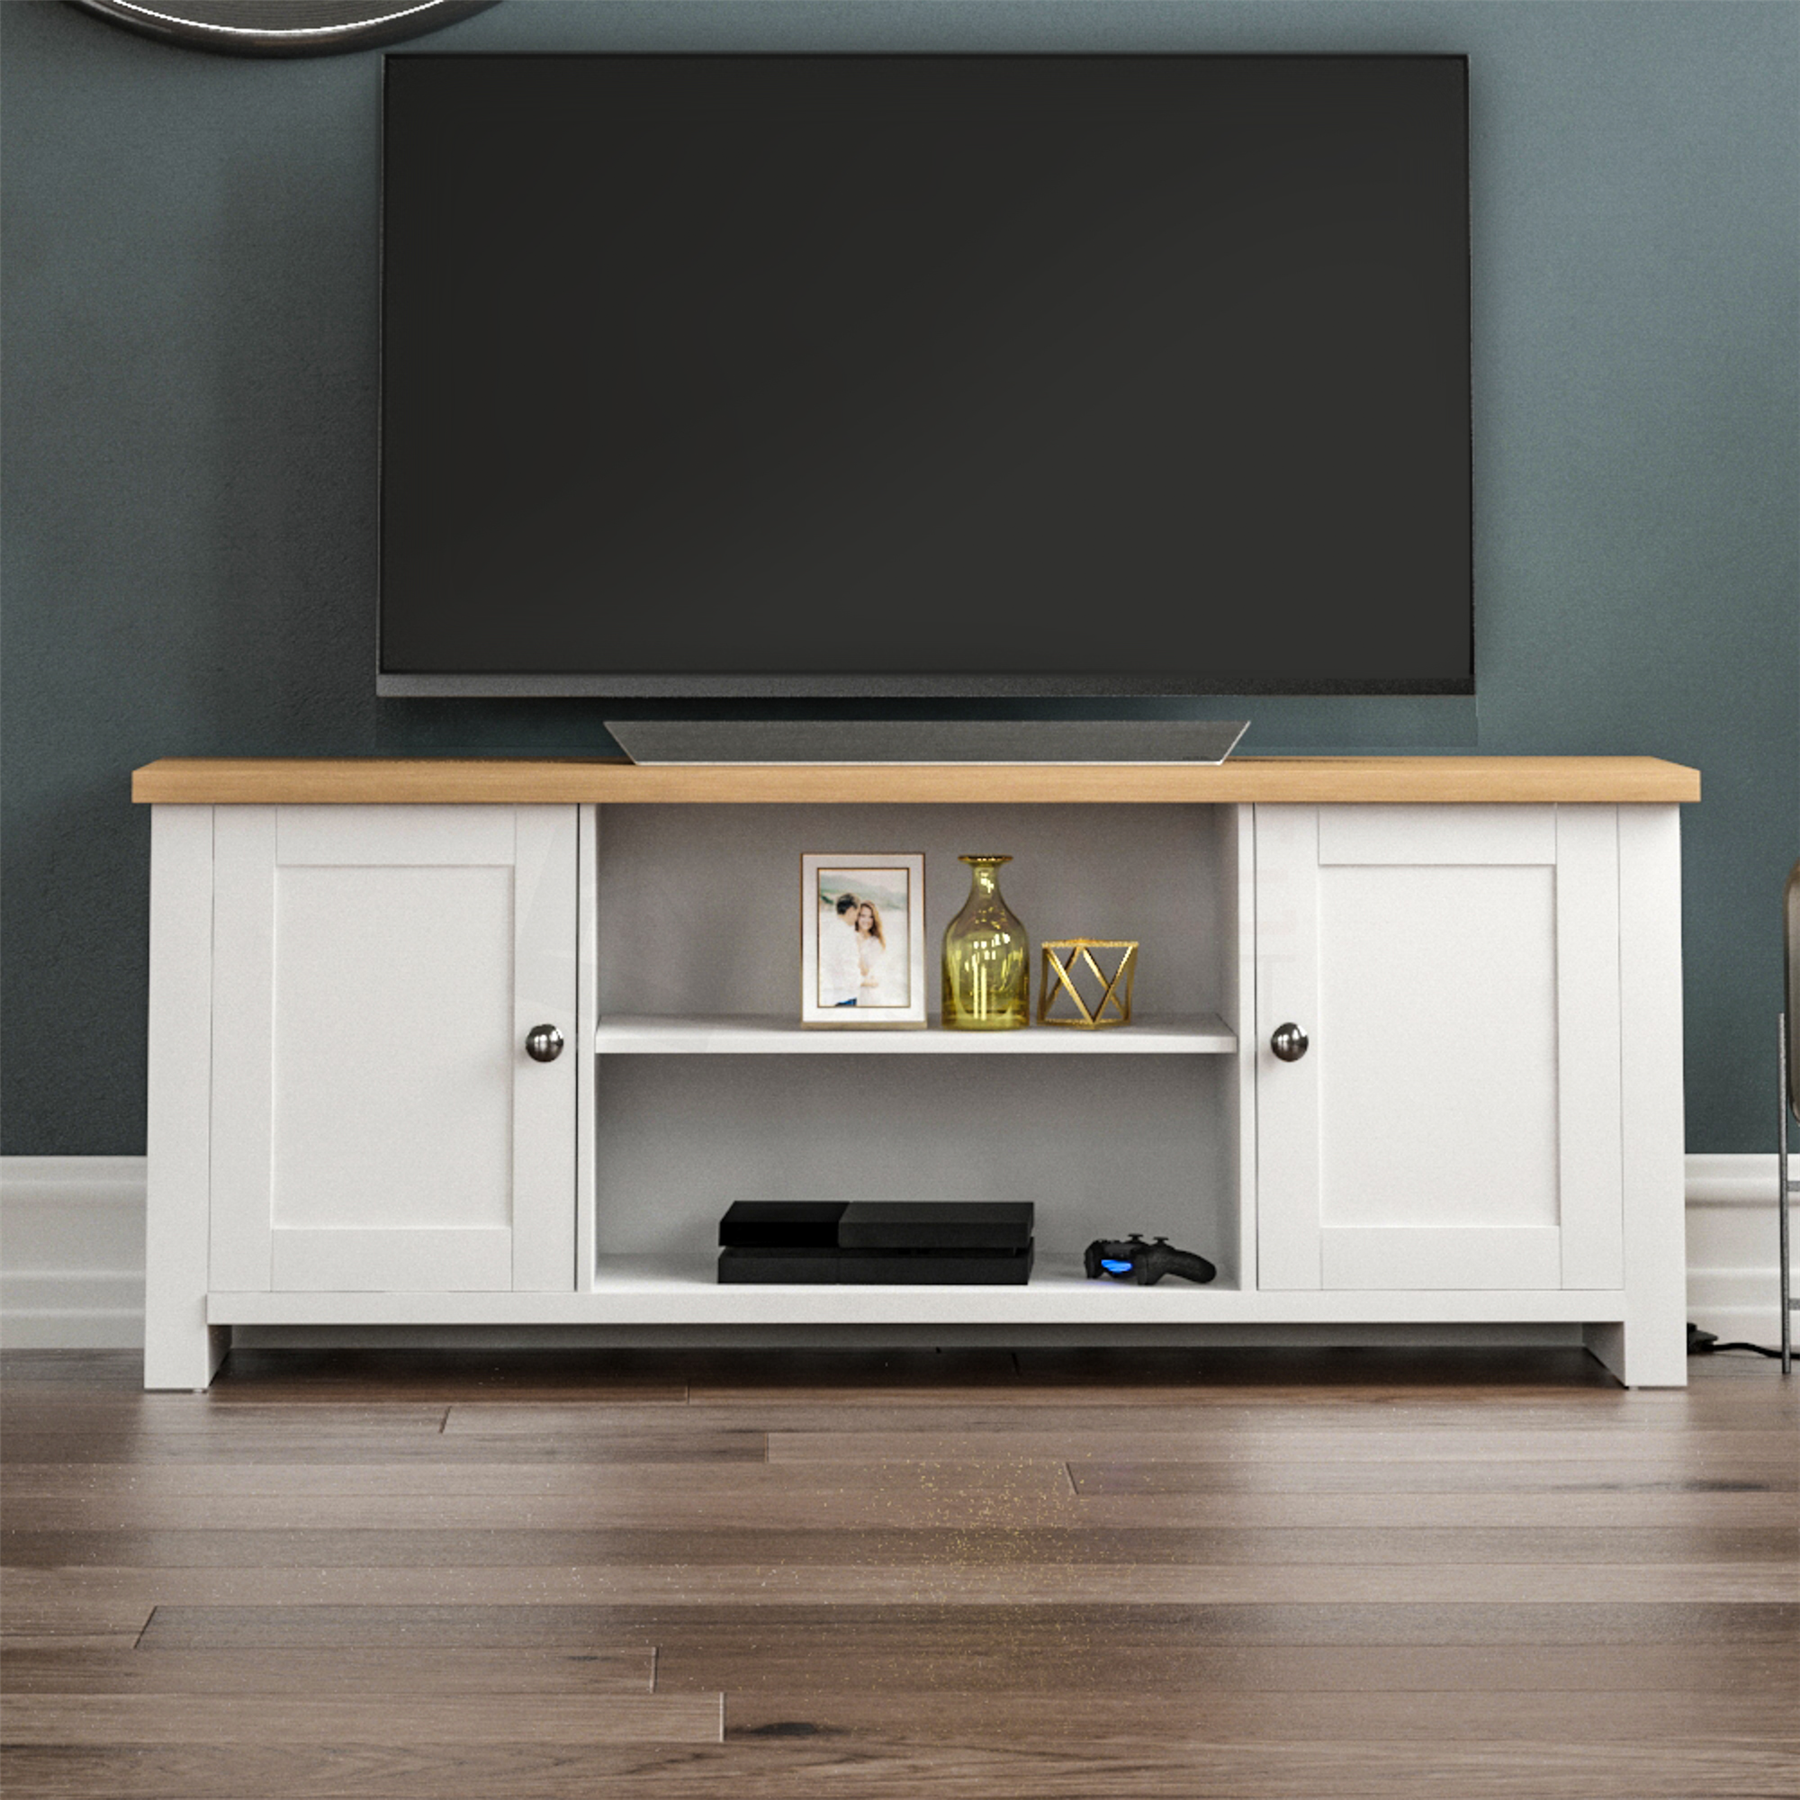 thumbnail 13 - Modern White TV Stand Cabinet LED Unit Matt body and High Gloss Doors  Lights